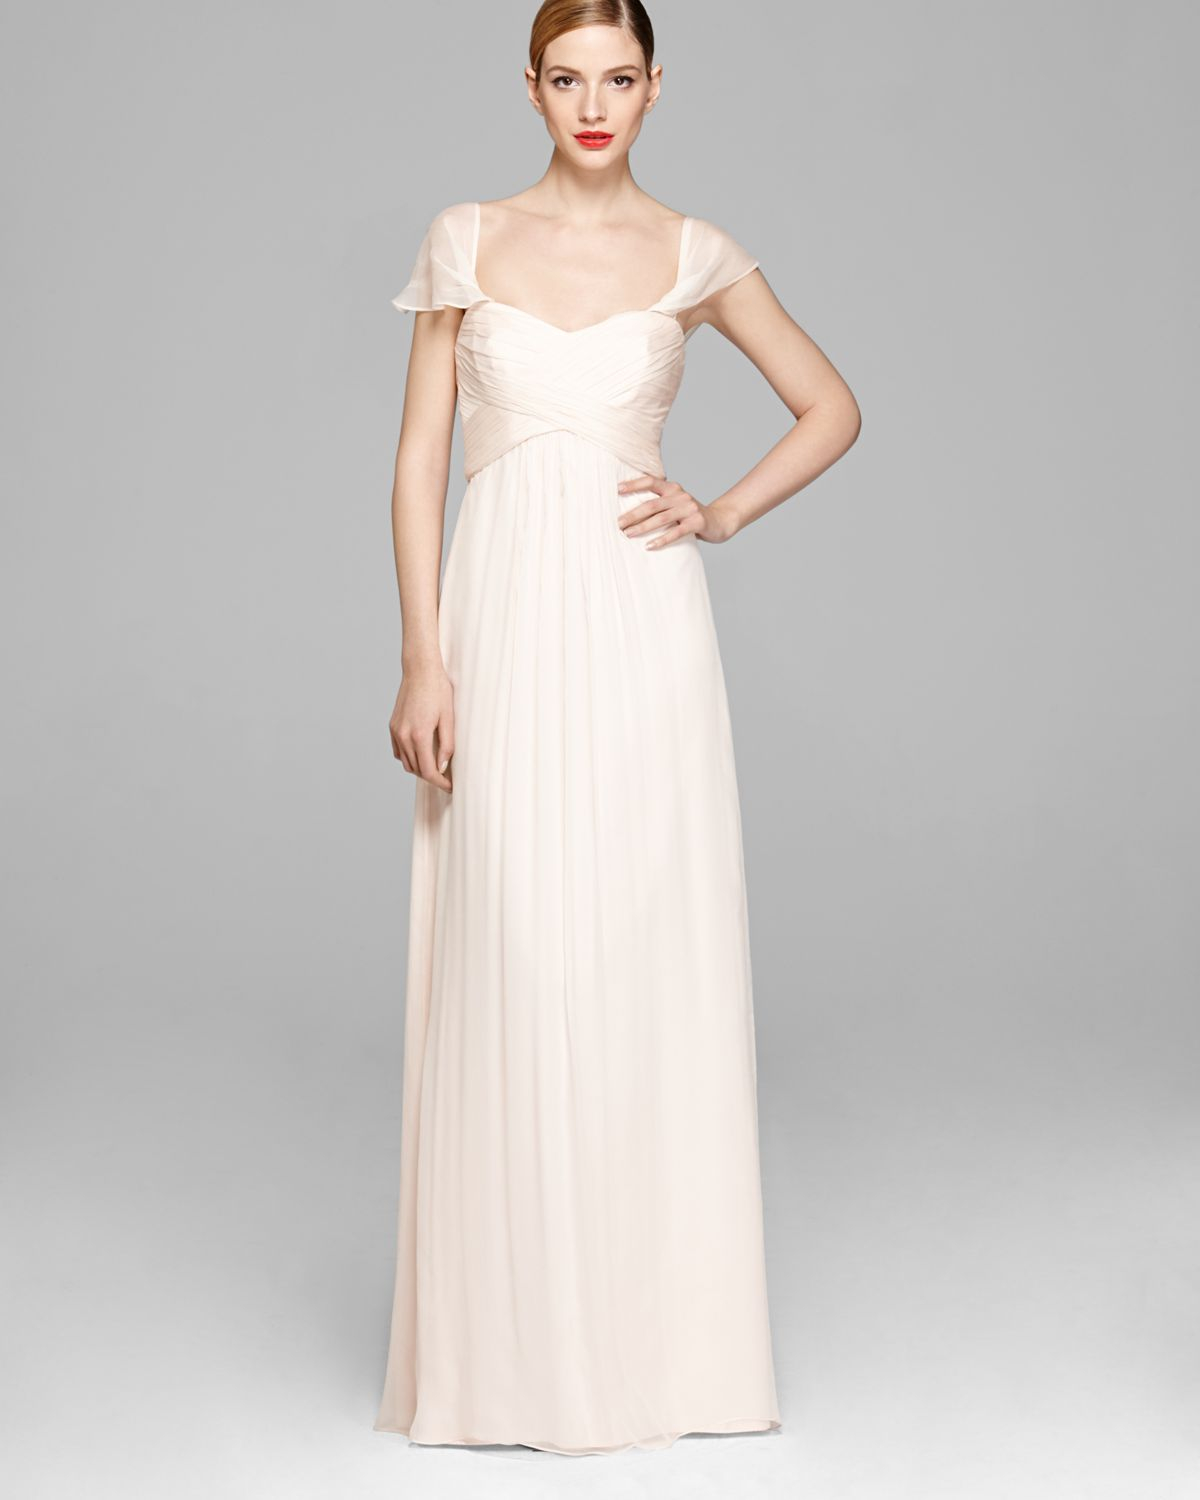 Lyst - Amsale Gown Off The Shoulder Sweetheart Neckline Chiffon in ...